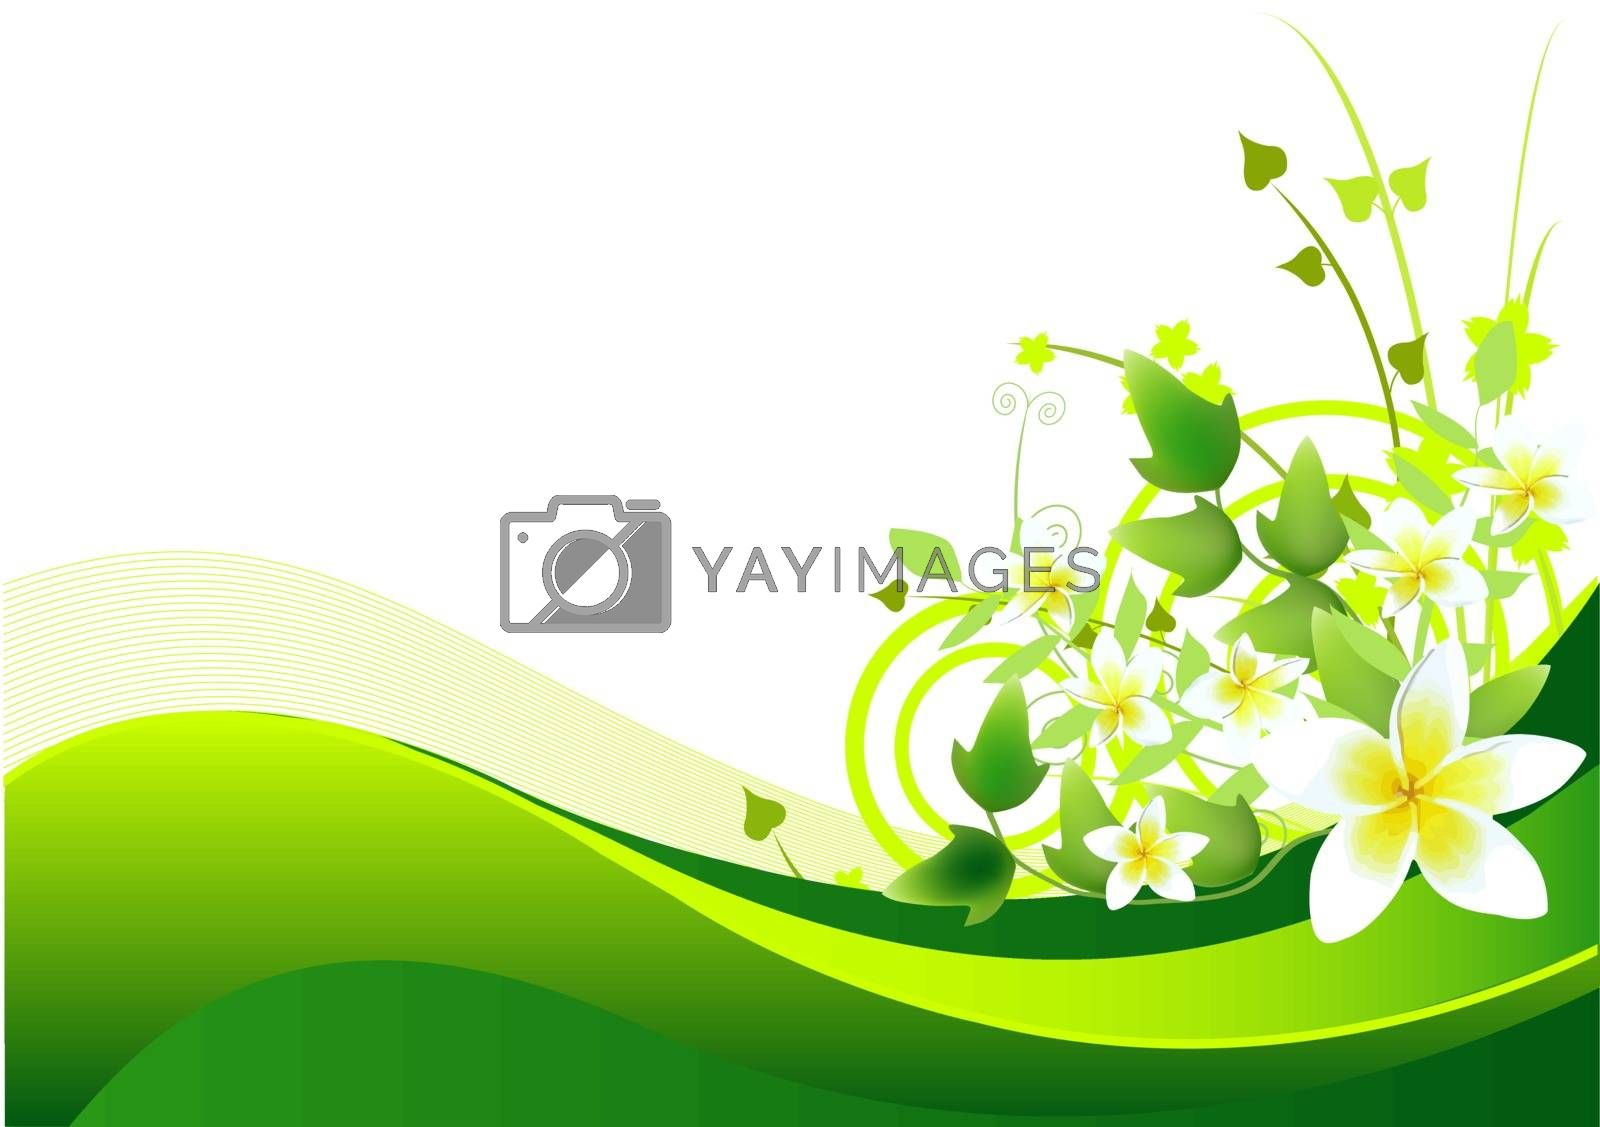 Royalty free image of Spring/summer background by Dazdraperma